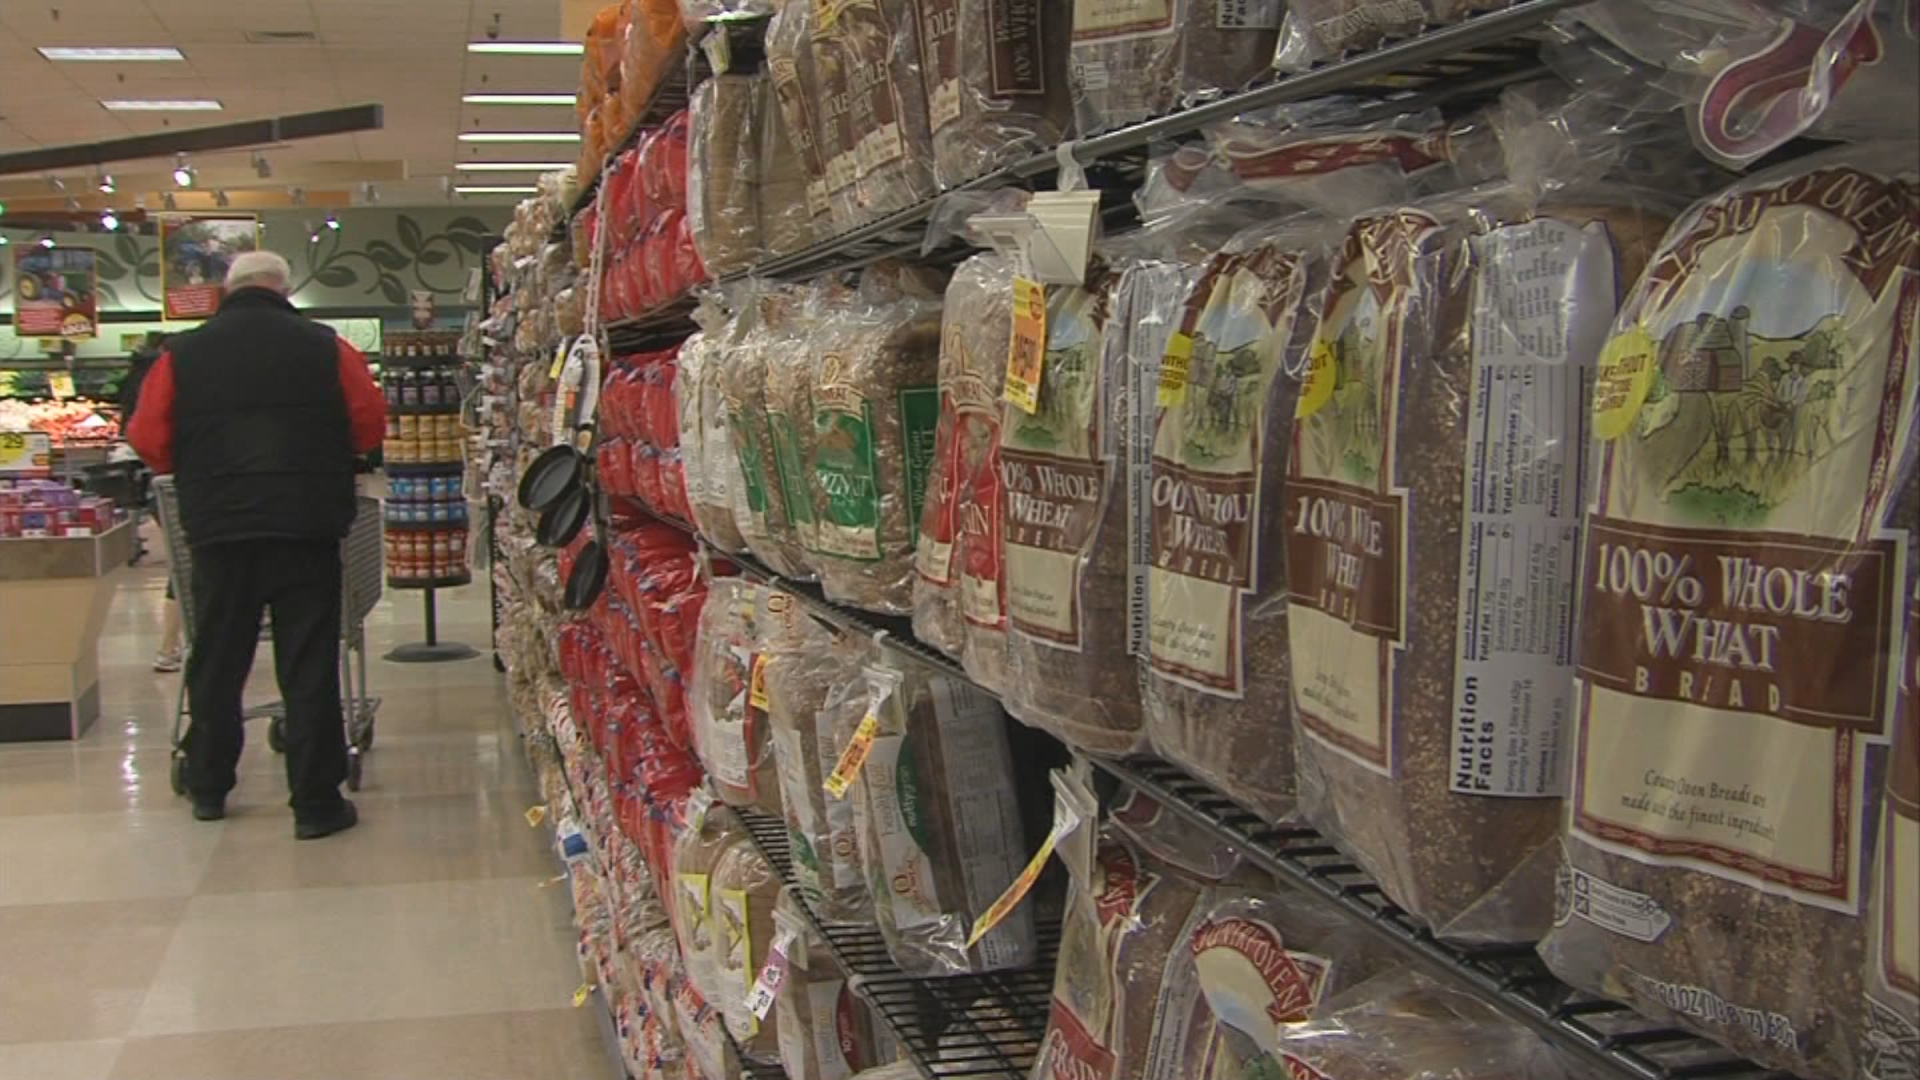 Utah has more than double its food insecurity rate since the pandemic began in February, according to Utahns Against Hunger. (Photo: KUTV)